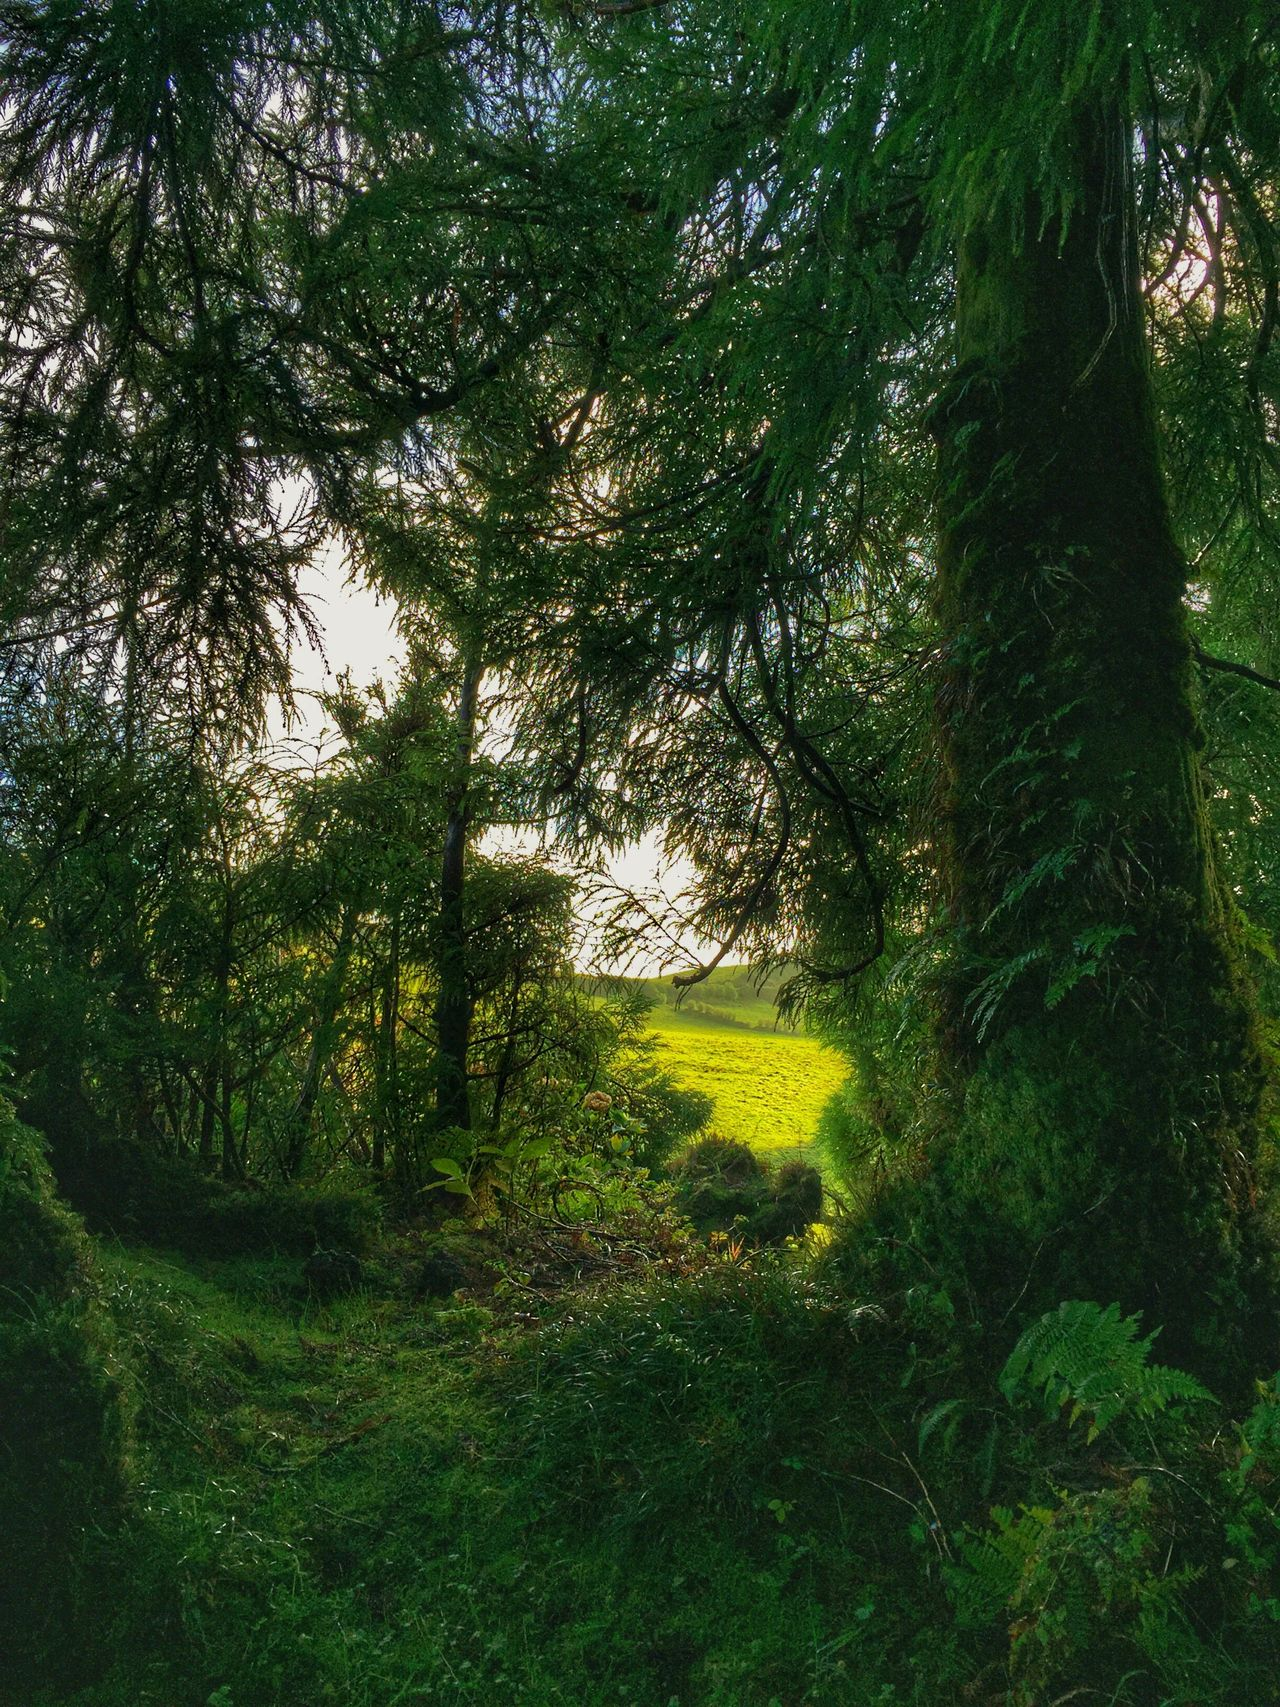 Tree Nature Green Color Tranquility Growth Beauty In Nature Forest Grass Lush Foliage Tranquil Scene No People Scenics Tree Trunk Outdoors Landscape Day Portugal #potugalemfotos #festanaaldeia15 #cannonfotography Azores